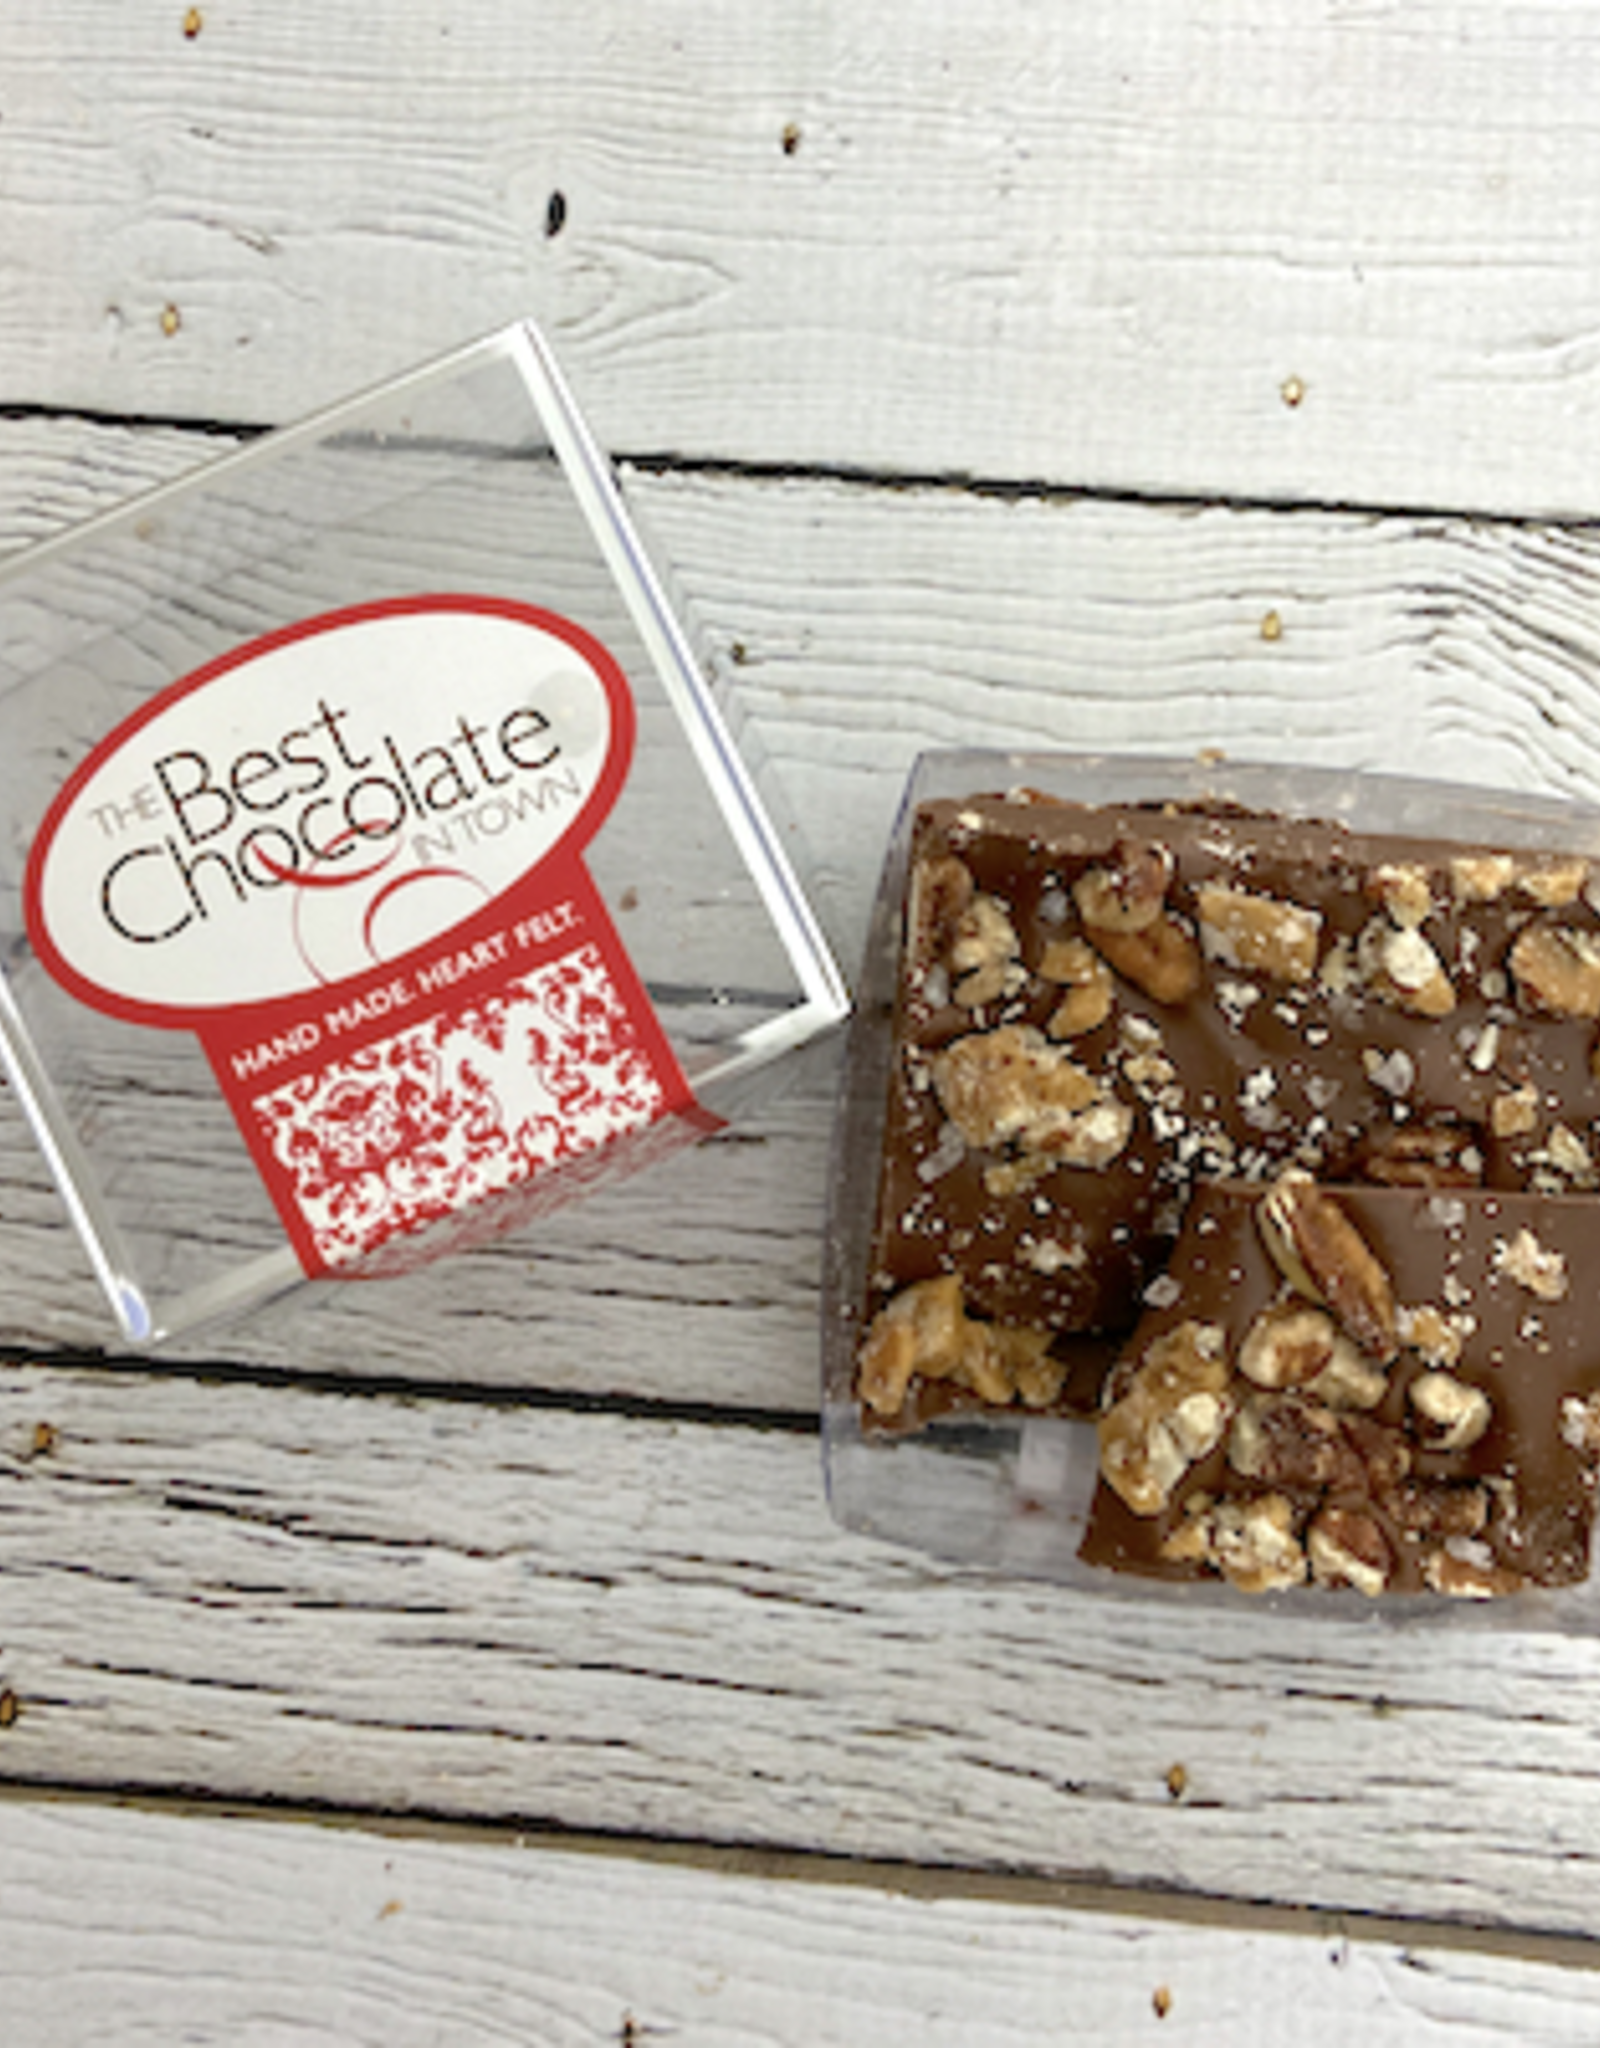 FRITTLE Chocolate Salted Turtle Bark from Best Chocolate in Town